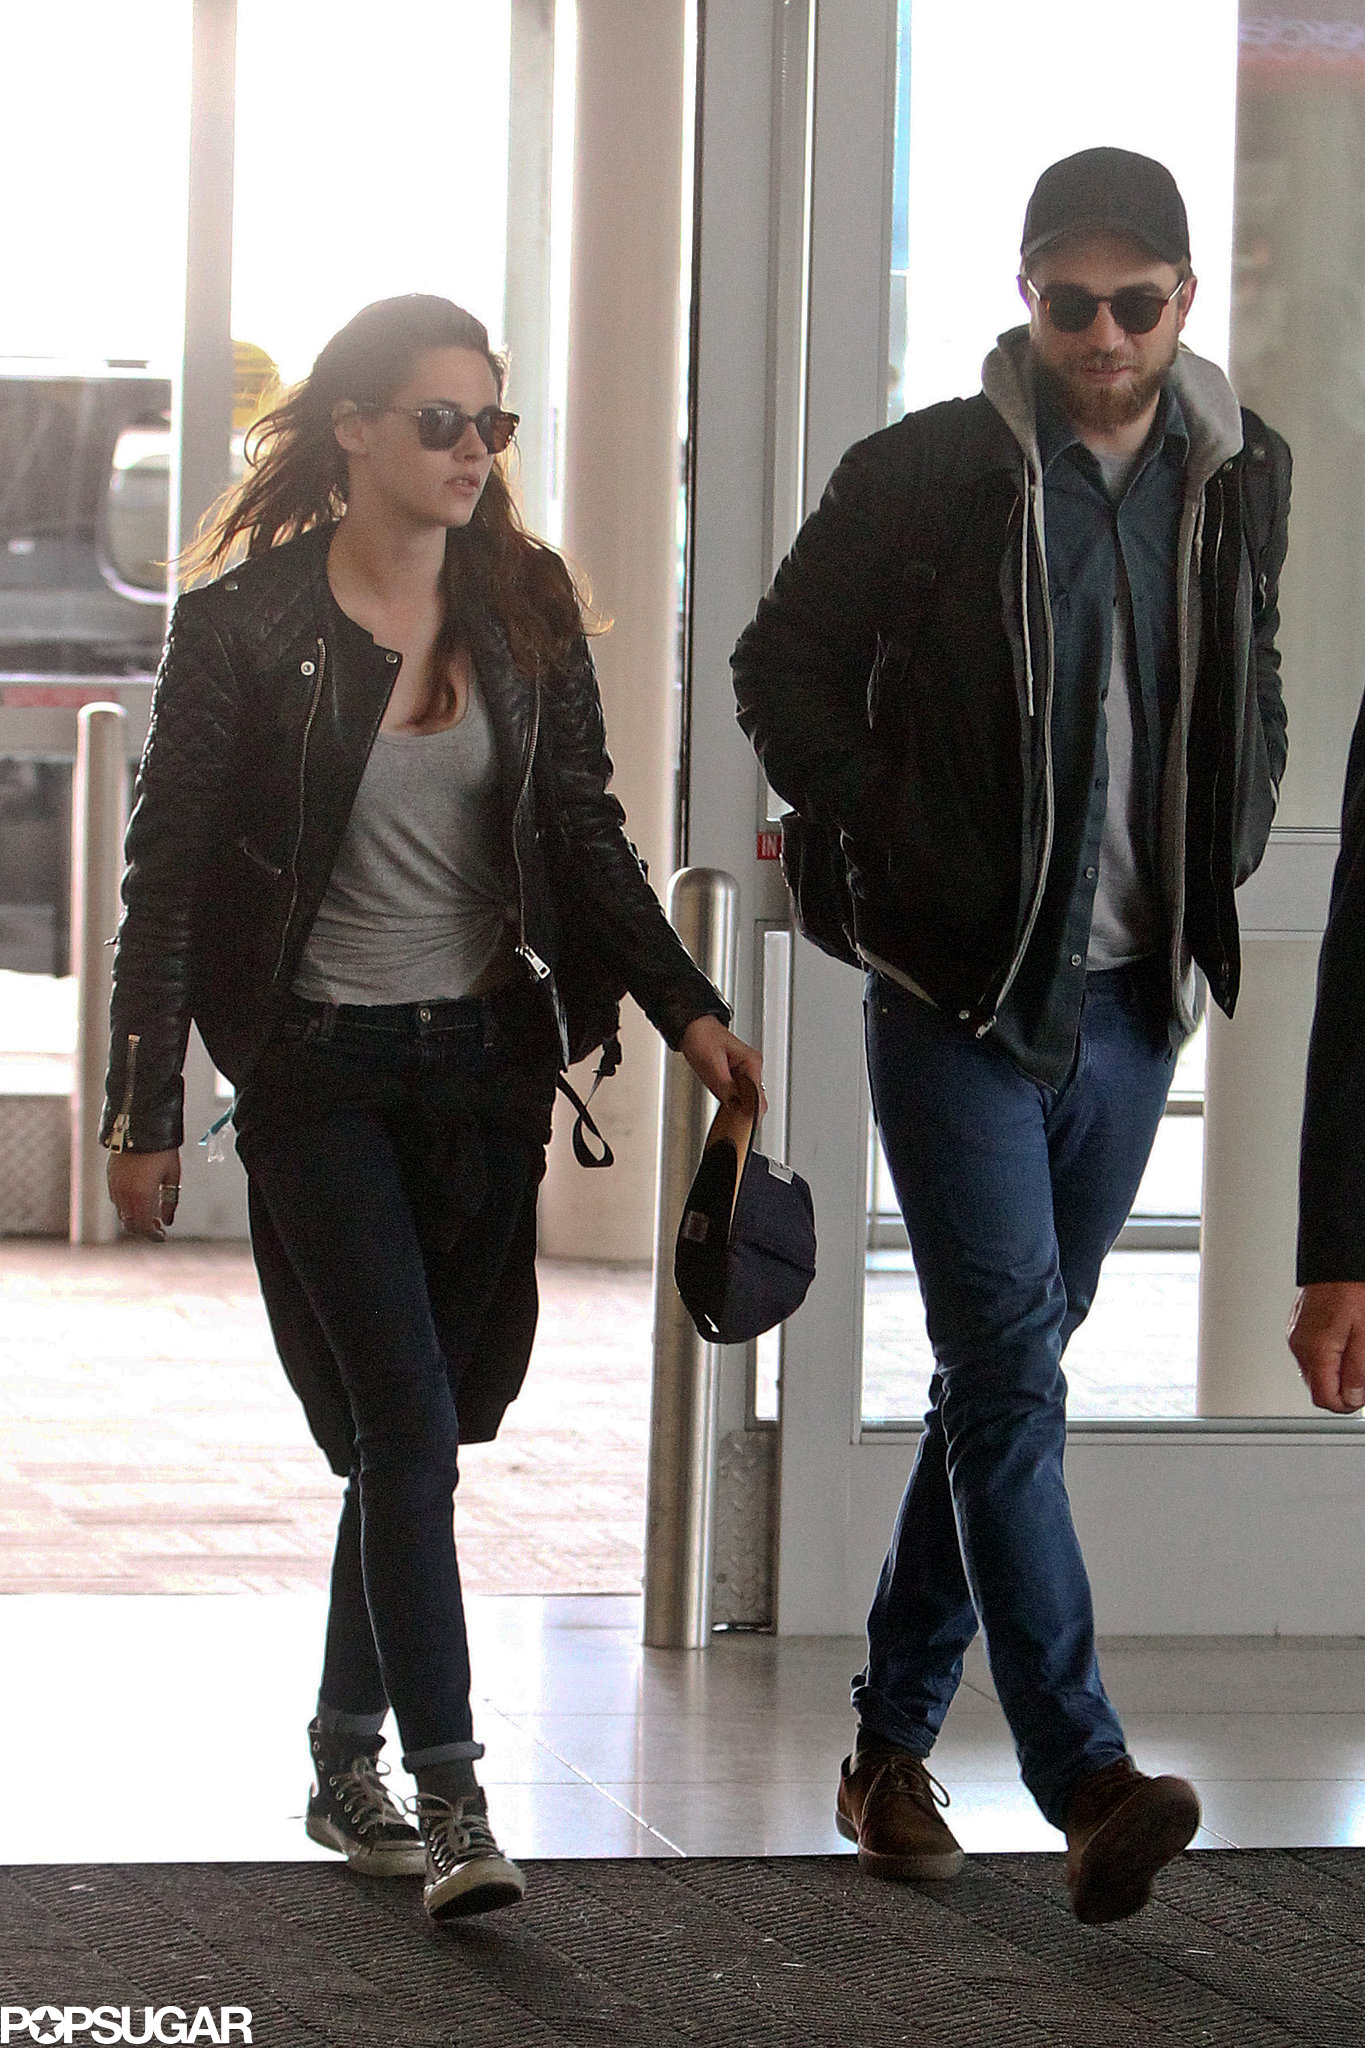 Rob Skips the Met Gala but Stays in NYC With Kristen